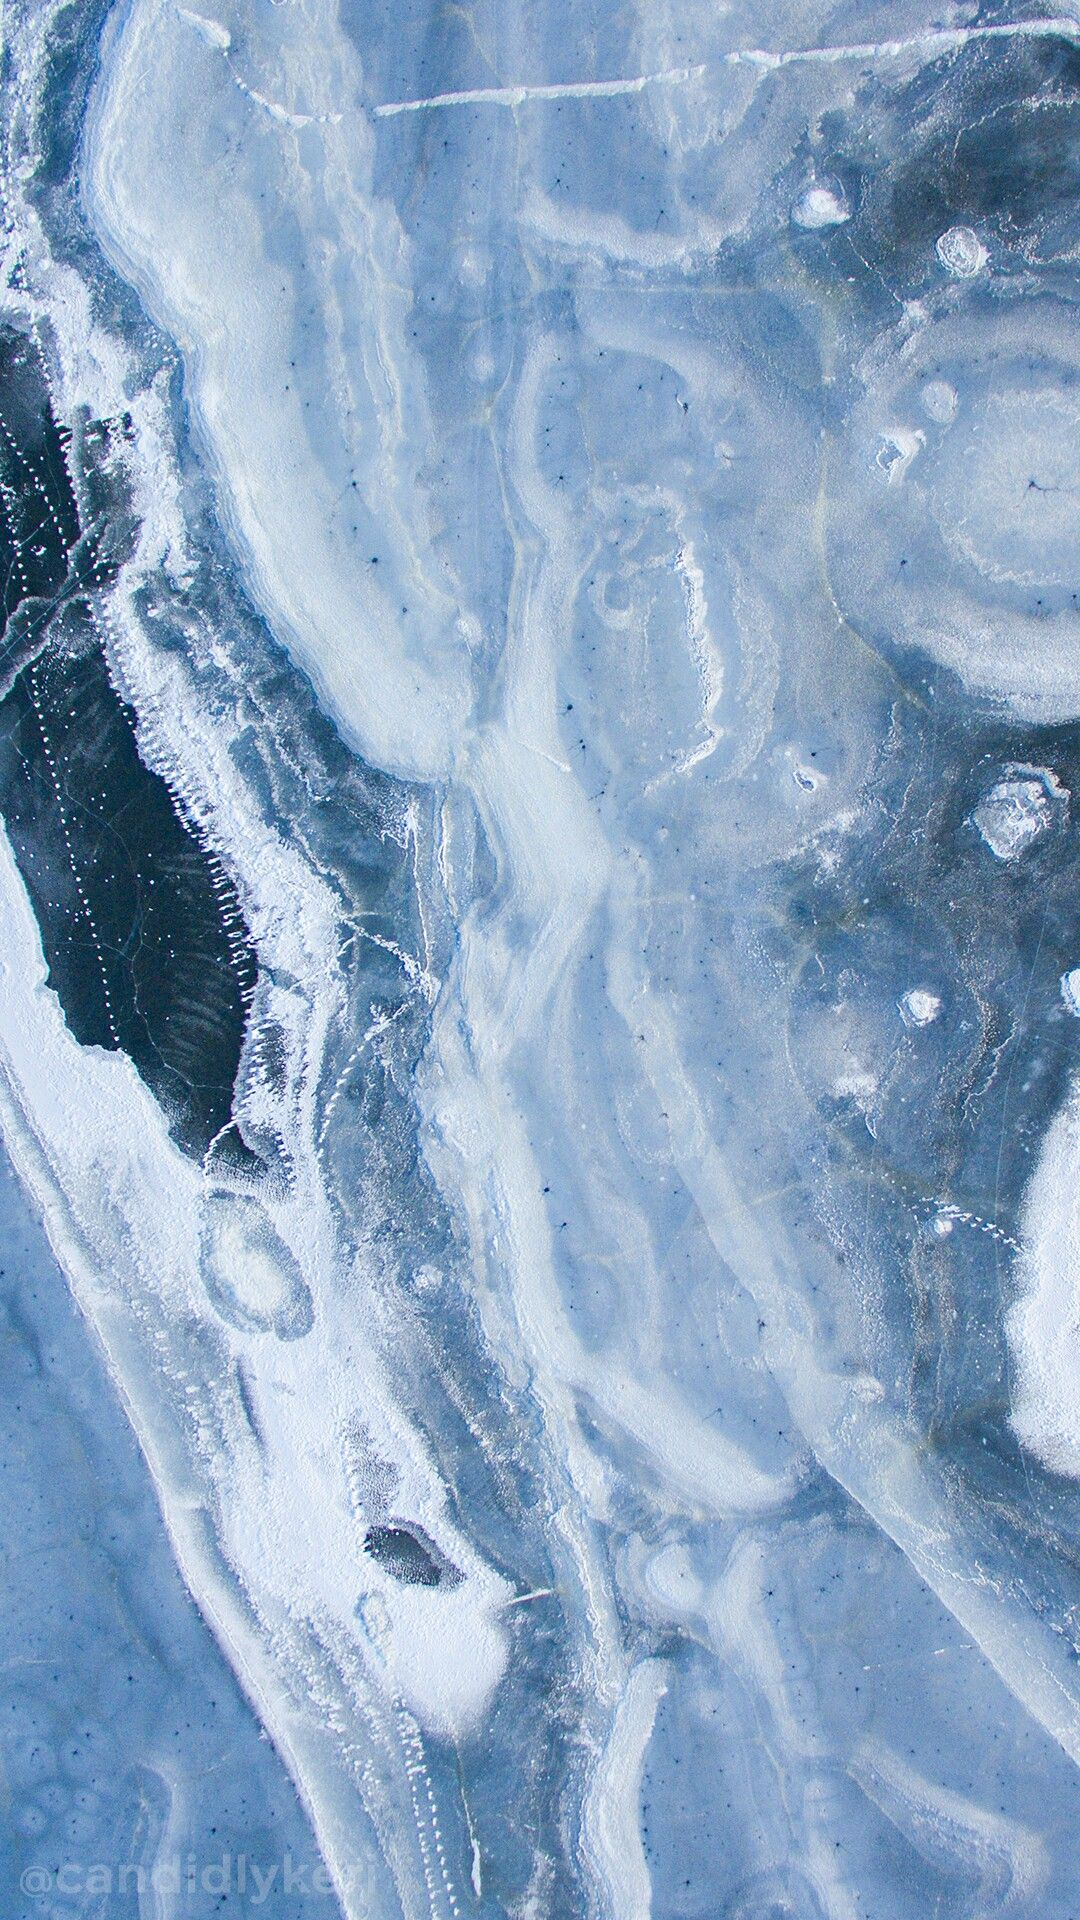 tumblr blue marble iphone wallpaper background © Sfondi